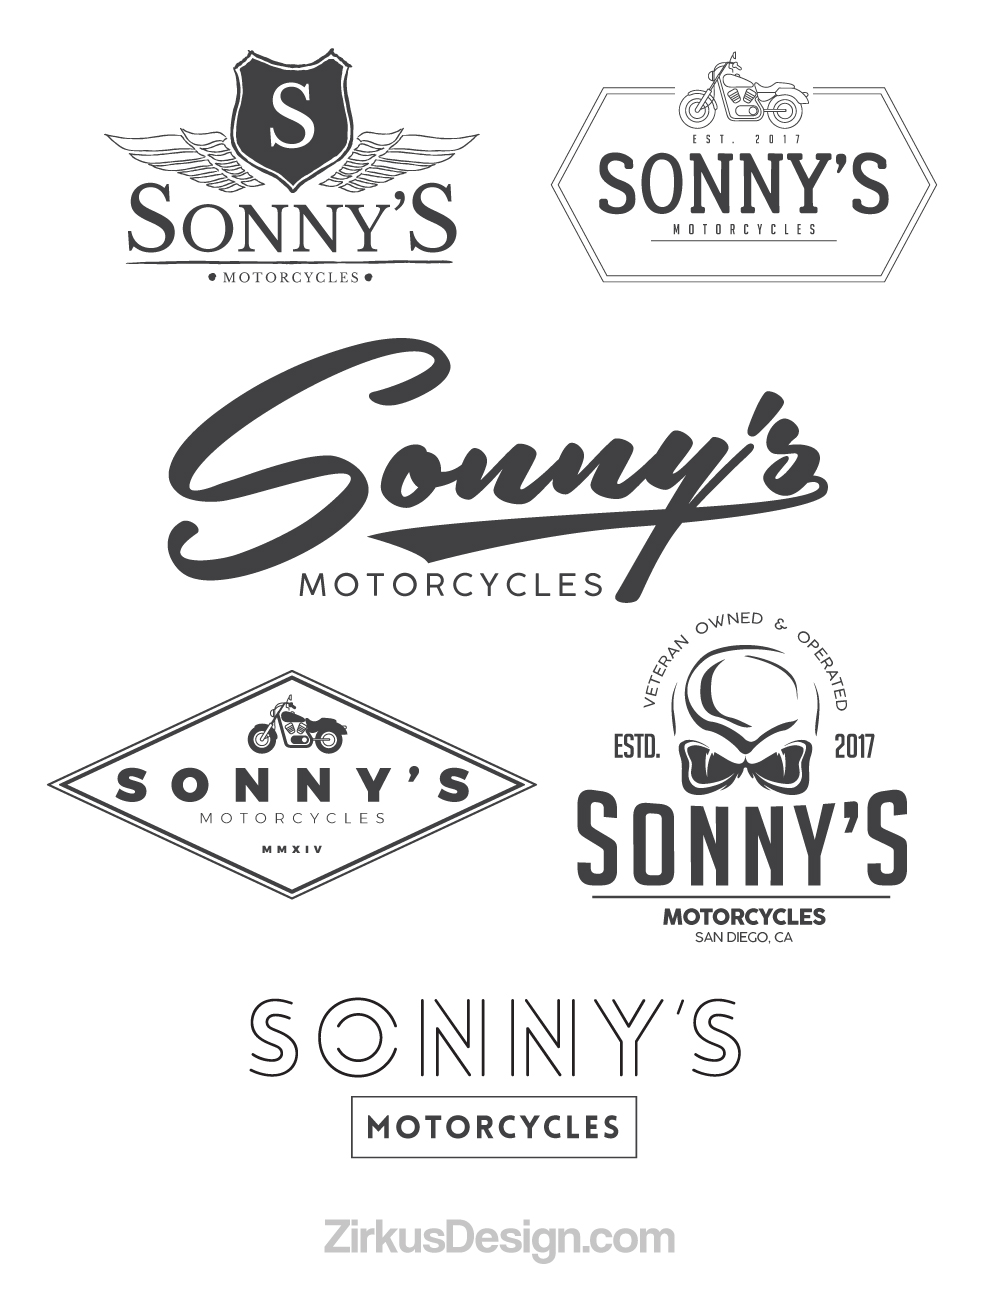 Zirkus Design | Logo Design for Veteran - Owned Businesses - Sonny's Motorcycles : All Six Logo Concepts